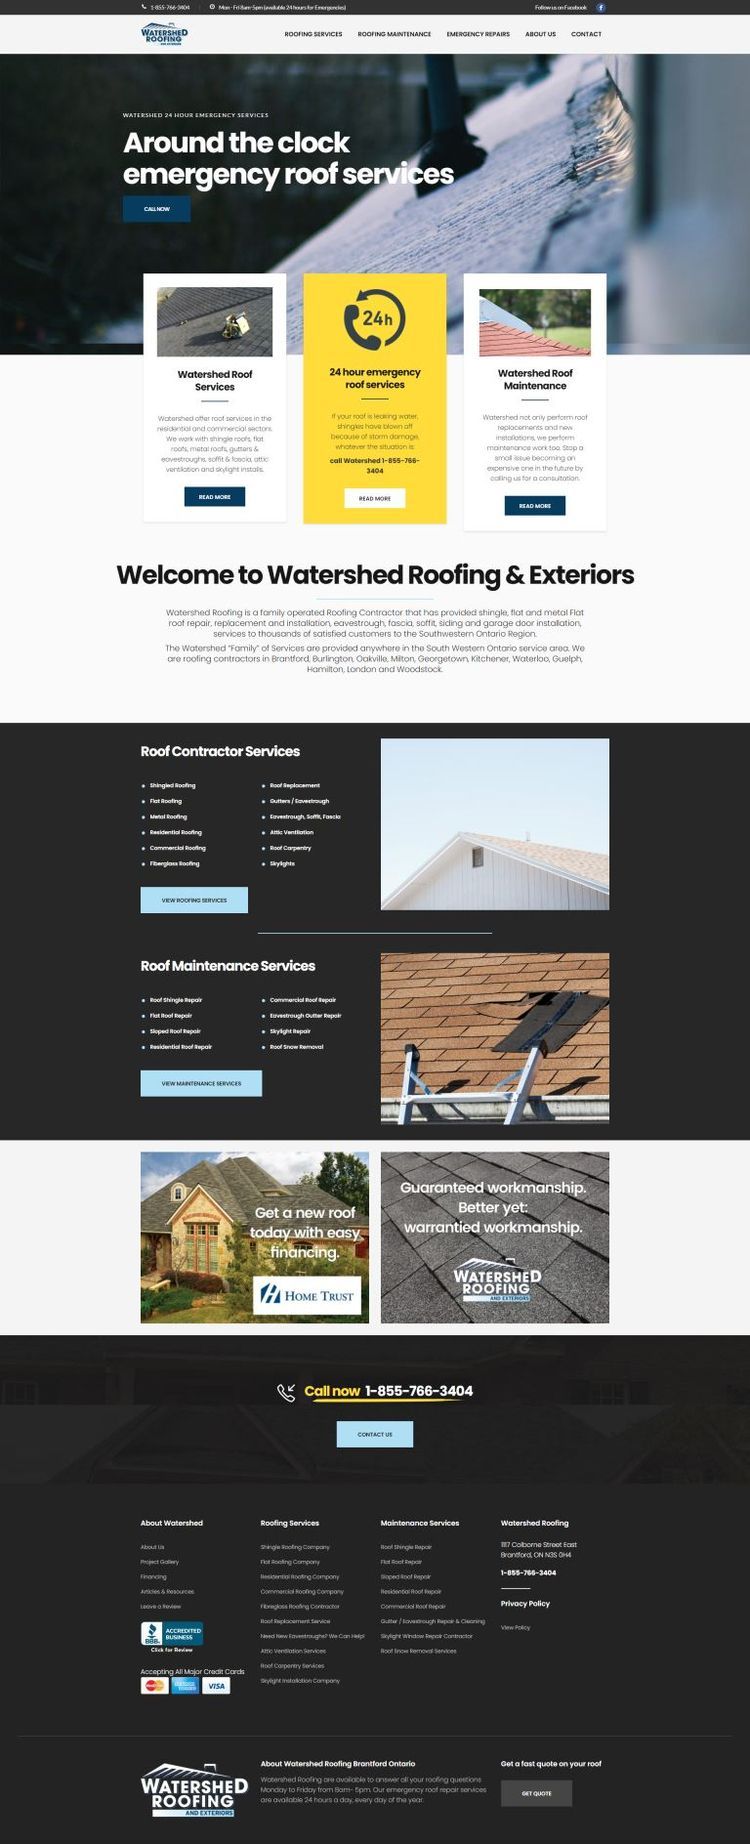 Watershed Roofing, provide roof - watershed2 | ello